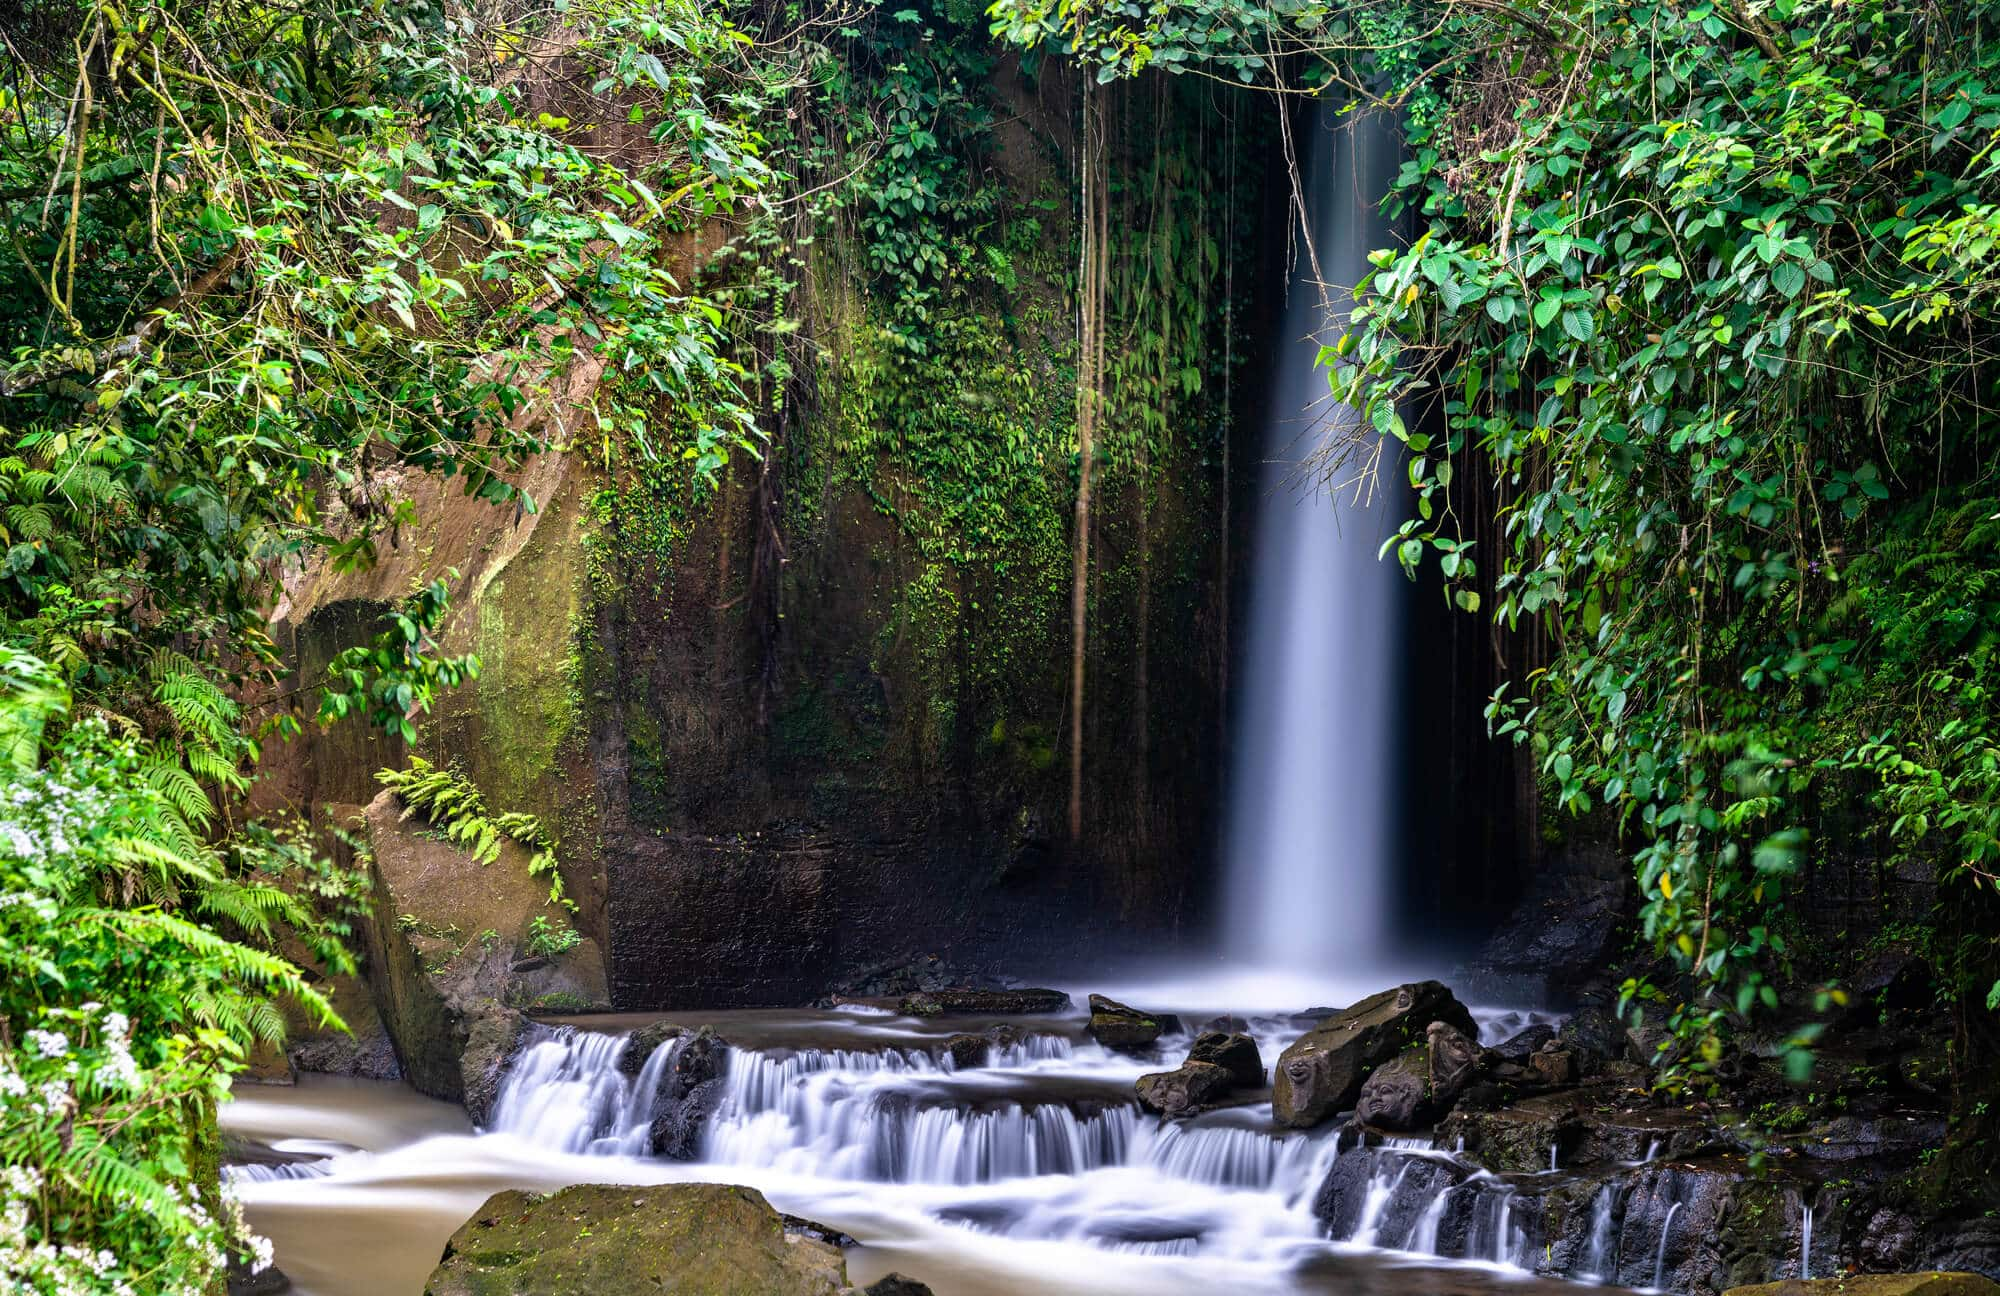 A guide to all the best waterfalls in Ubud Bali - Sumampan Waterfall